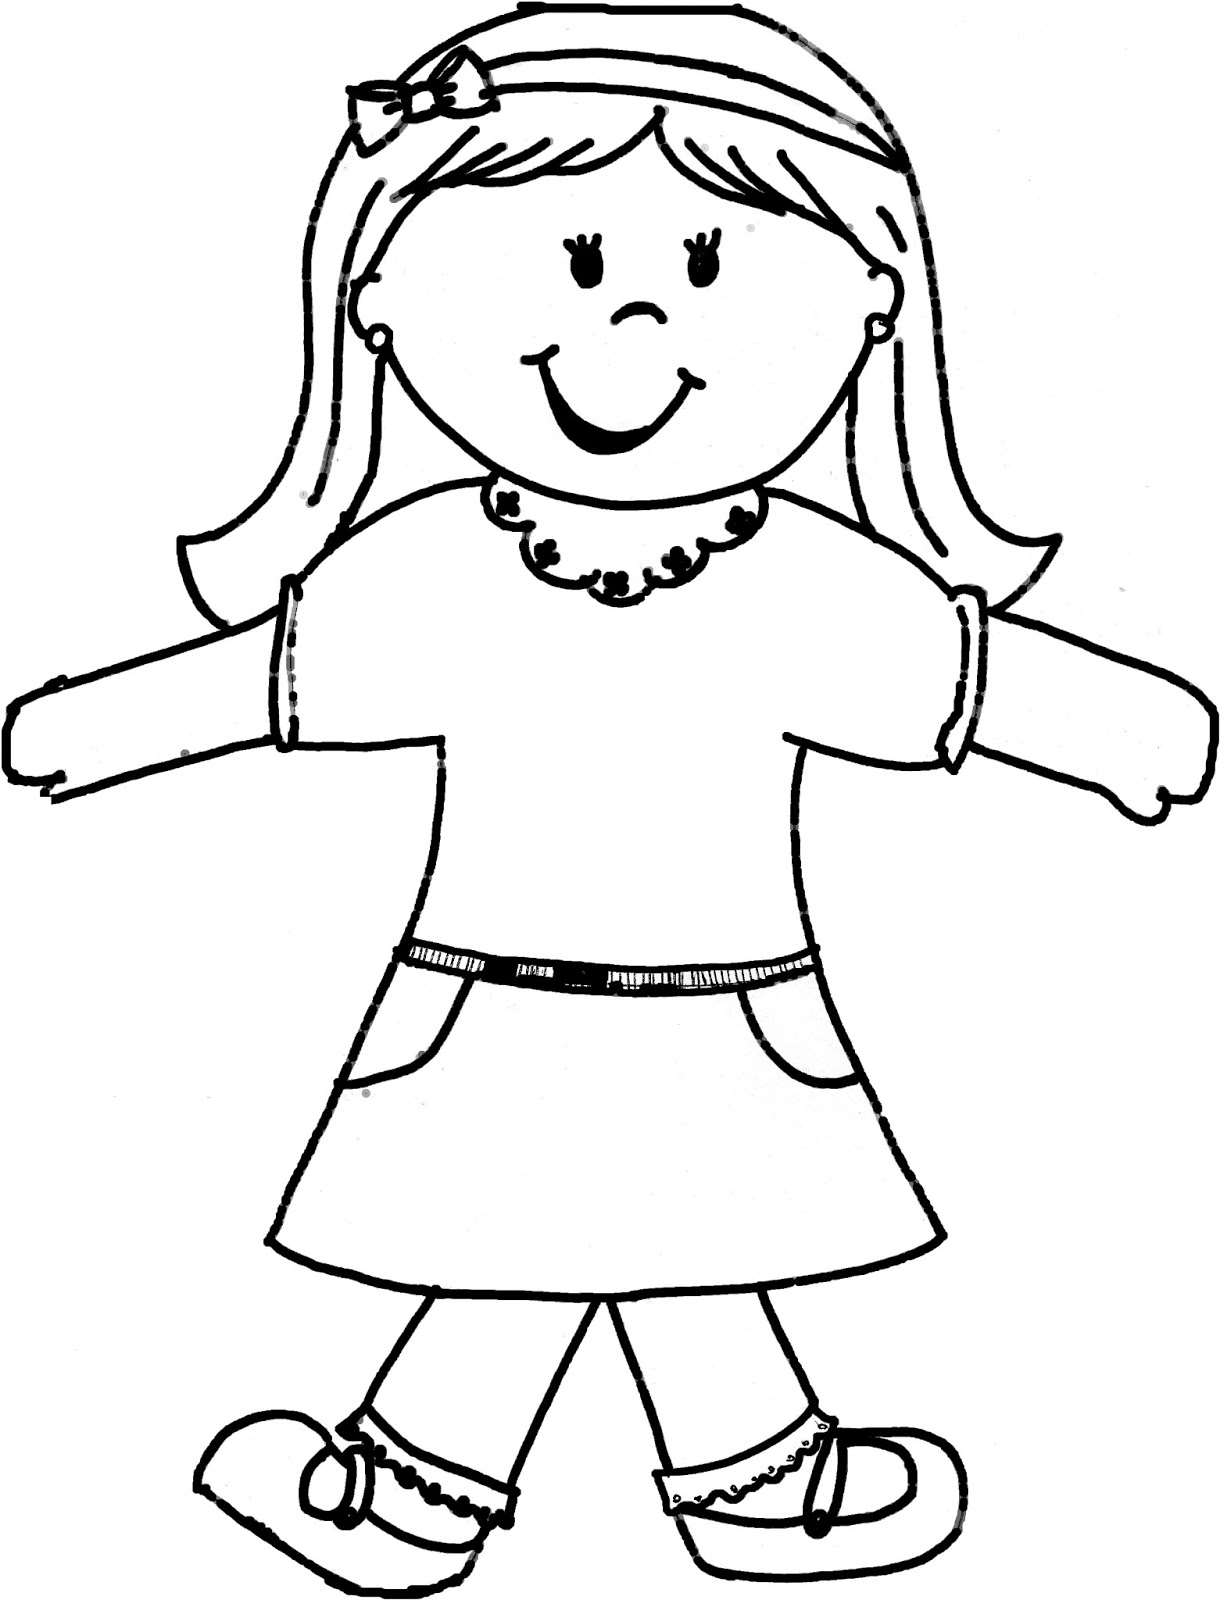 Blog Not Found Flat Stanley Coloring Page